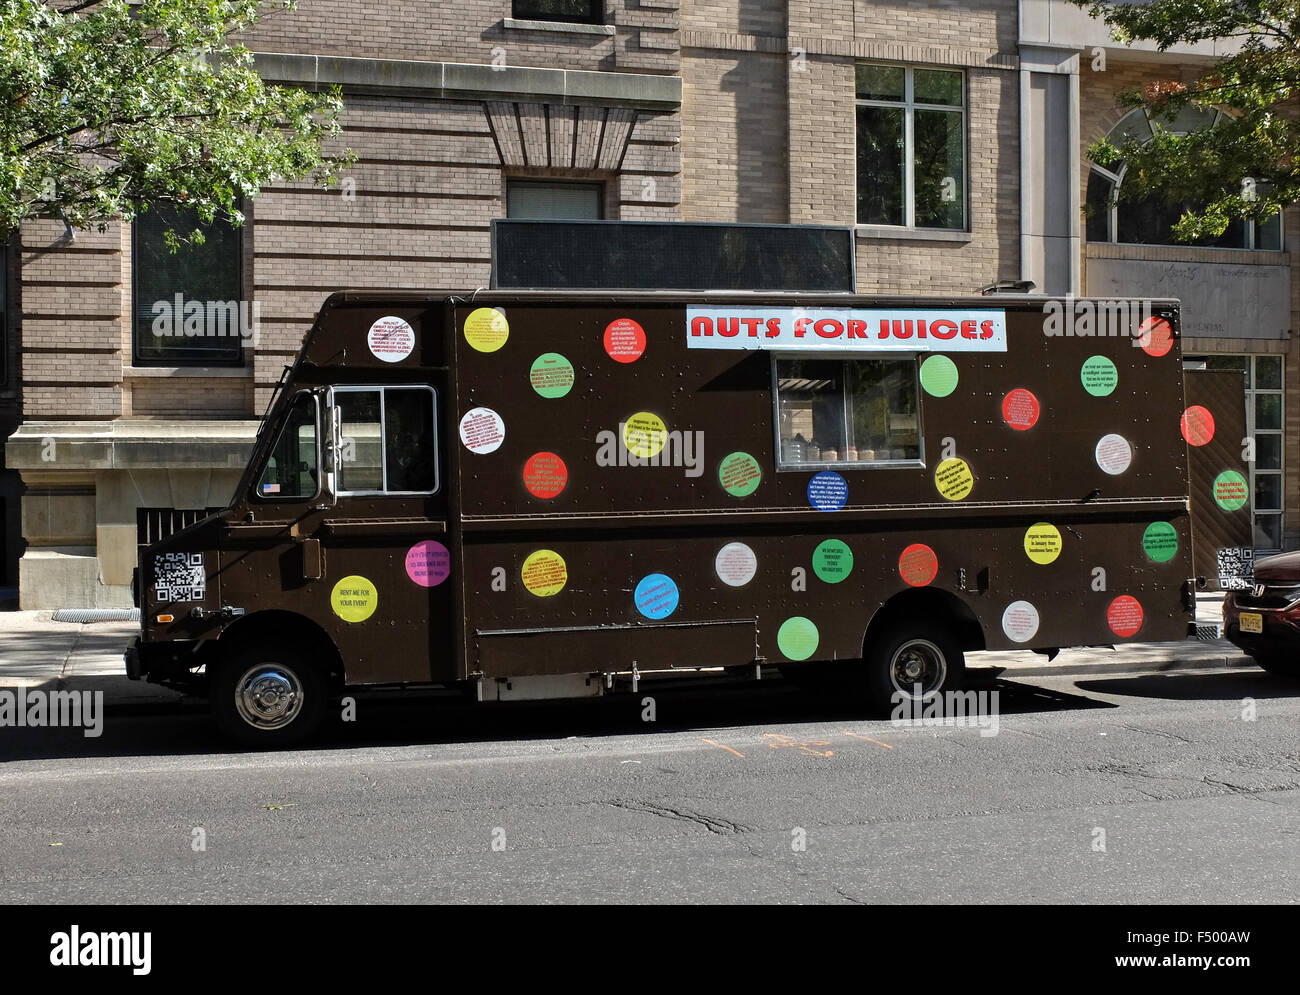 A truck selling imaginative blends of juices on Broadway on the Upper West Side on New York City - Stock Image